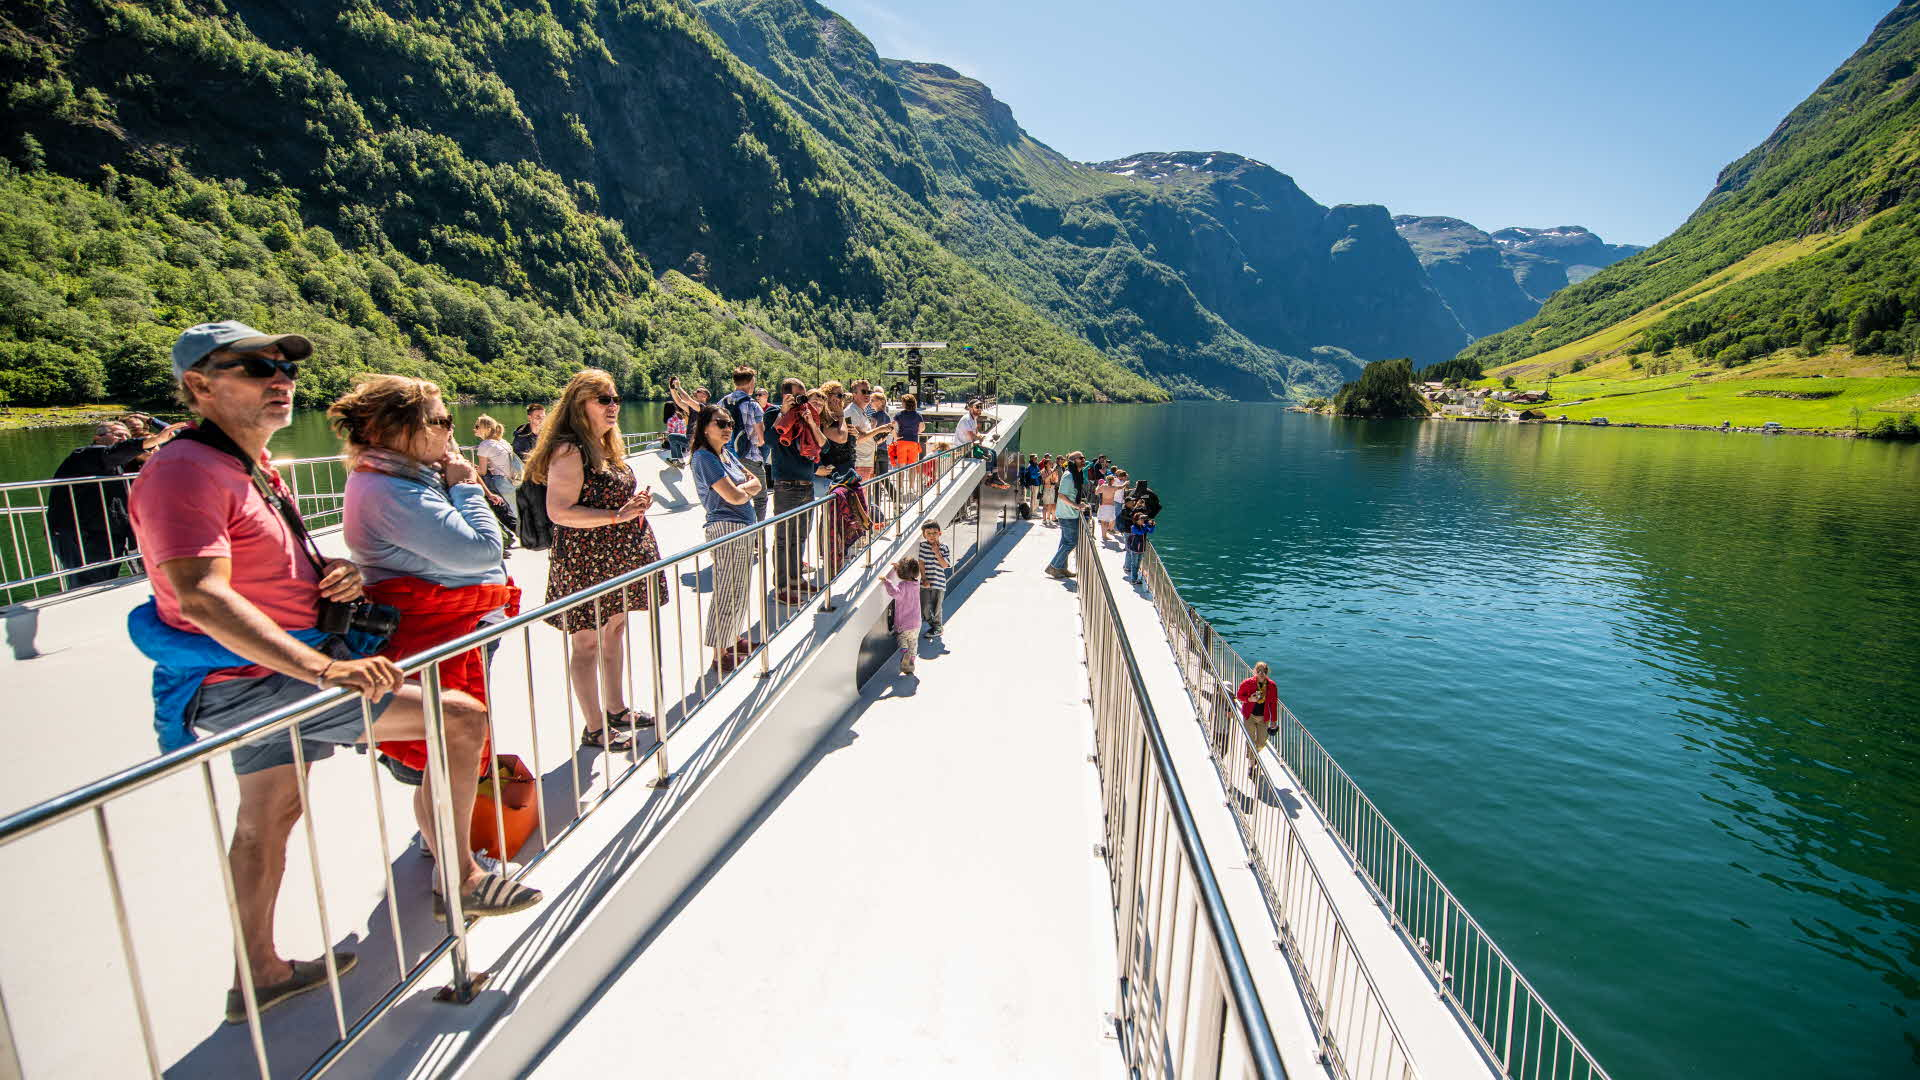 People standing outside by winding rails on board Future of The Fjords in UNESCO listed Nærøyfjord in summer